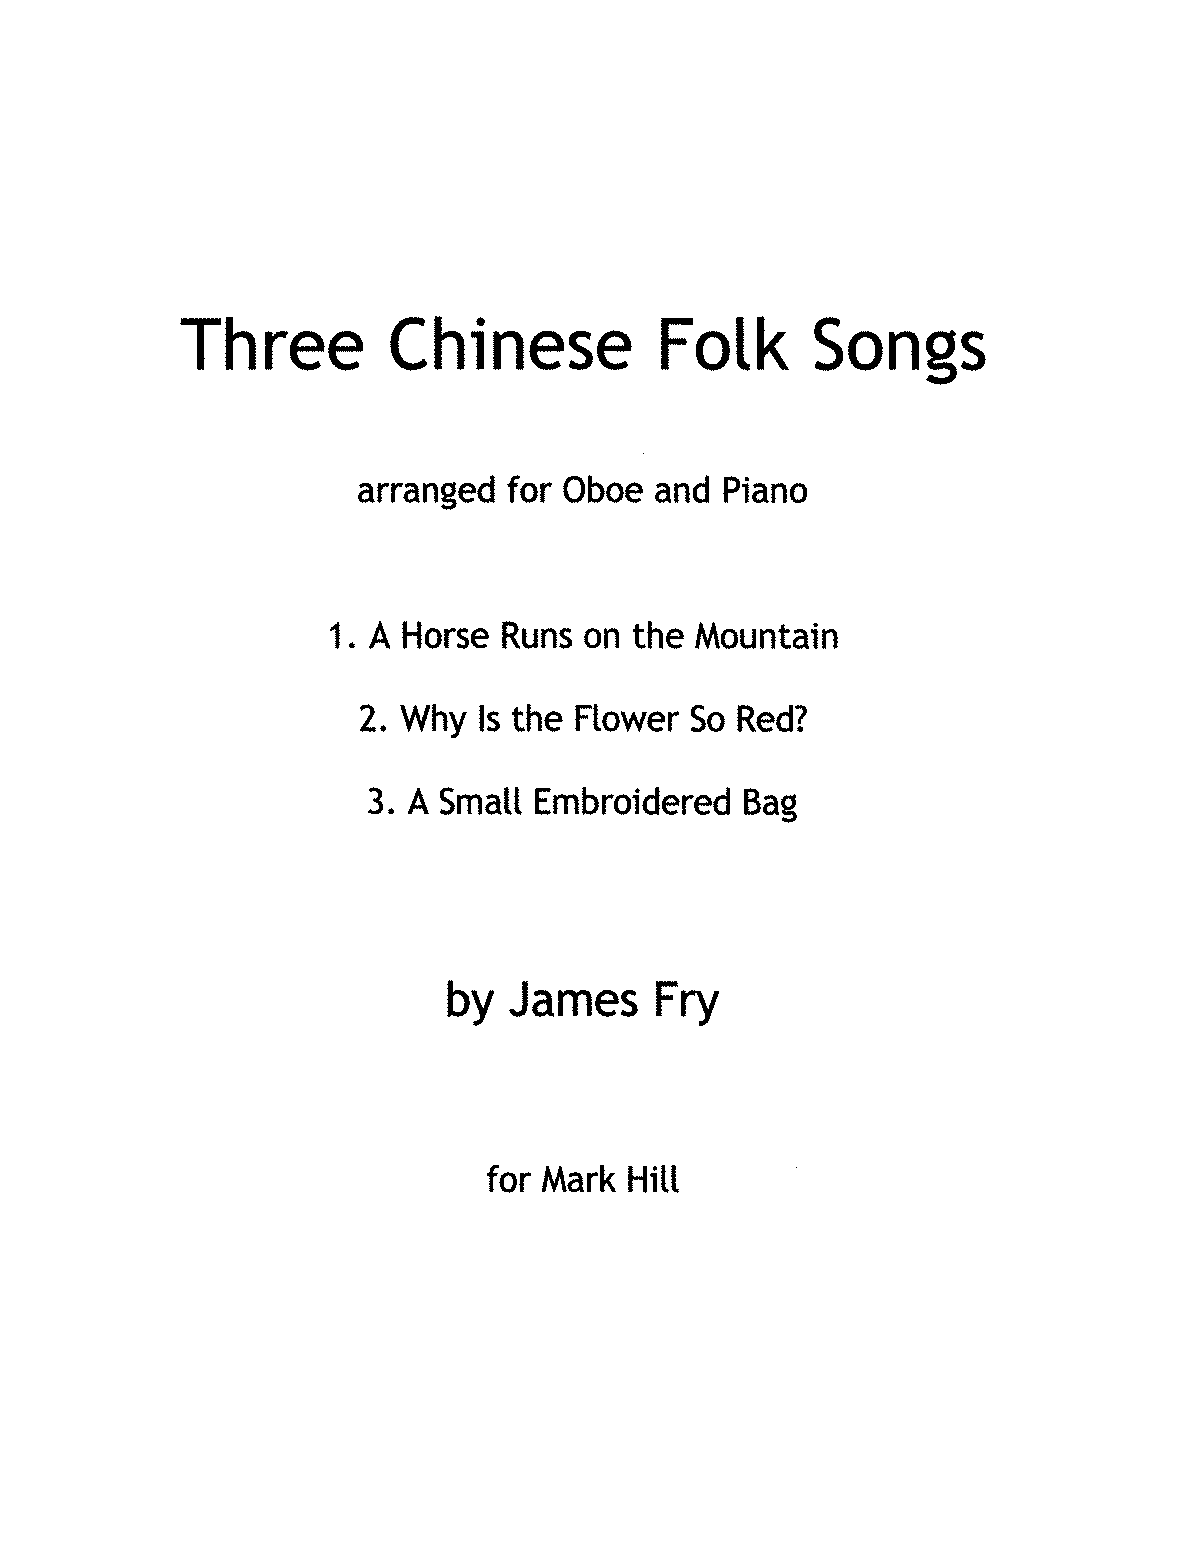 PMLP513258-JFry-Three Chinese Songs-Oboe-Score.pdf